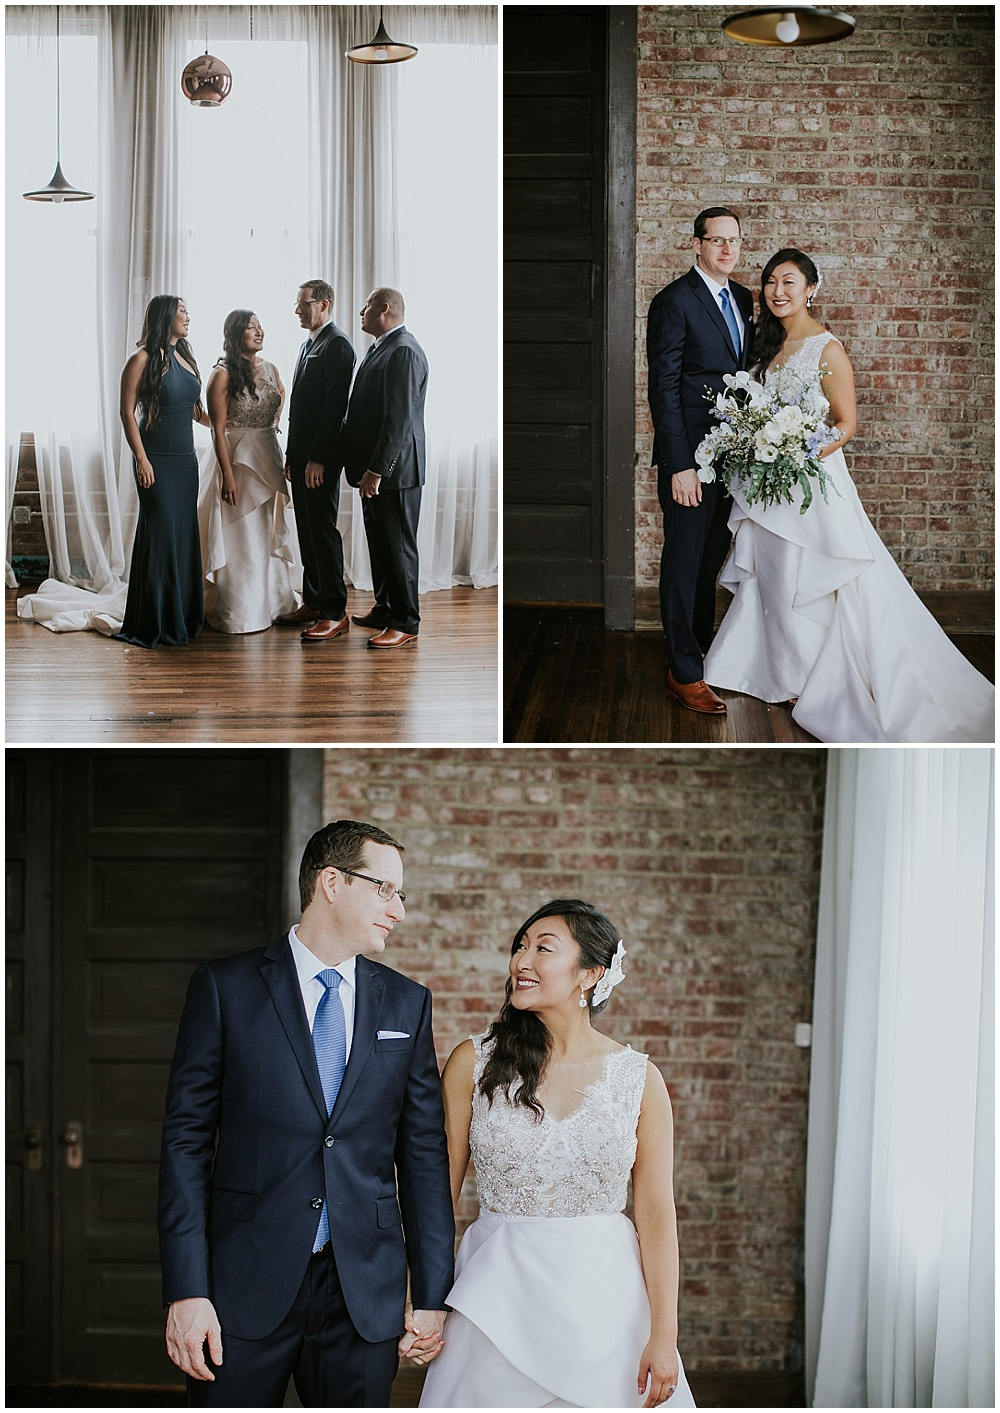 Bride and Groom portraits with small, intimate bridal party; ornate white v-neck wedding dress | Korean-American intimate multicultural wedding in Neidhammer coffee shop